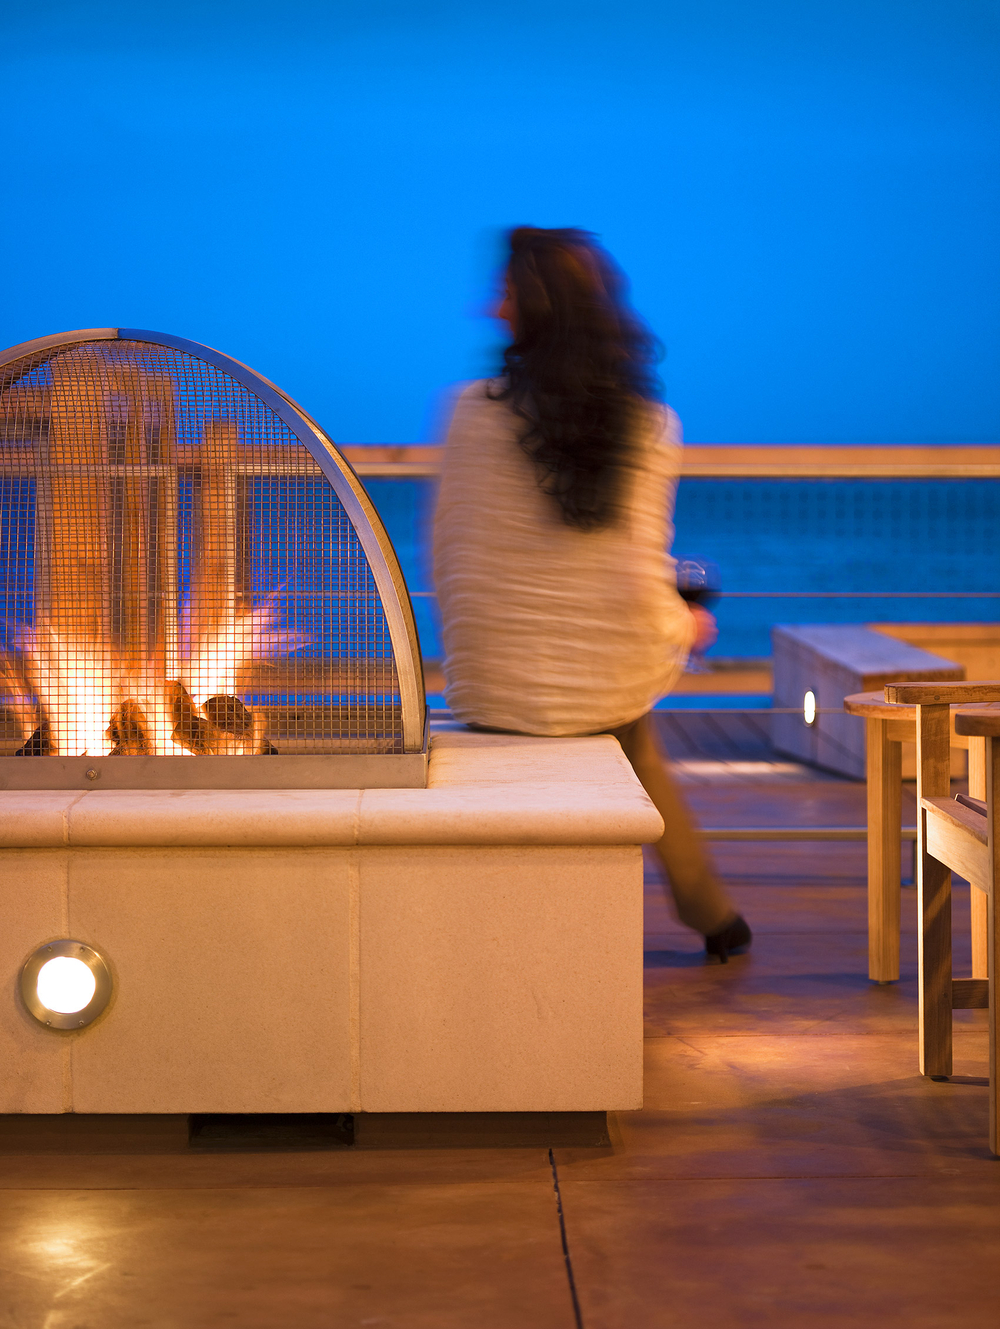 John-Sutton-Photography-InterConMont-FirePit.jpg